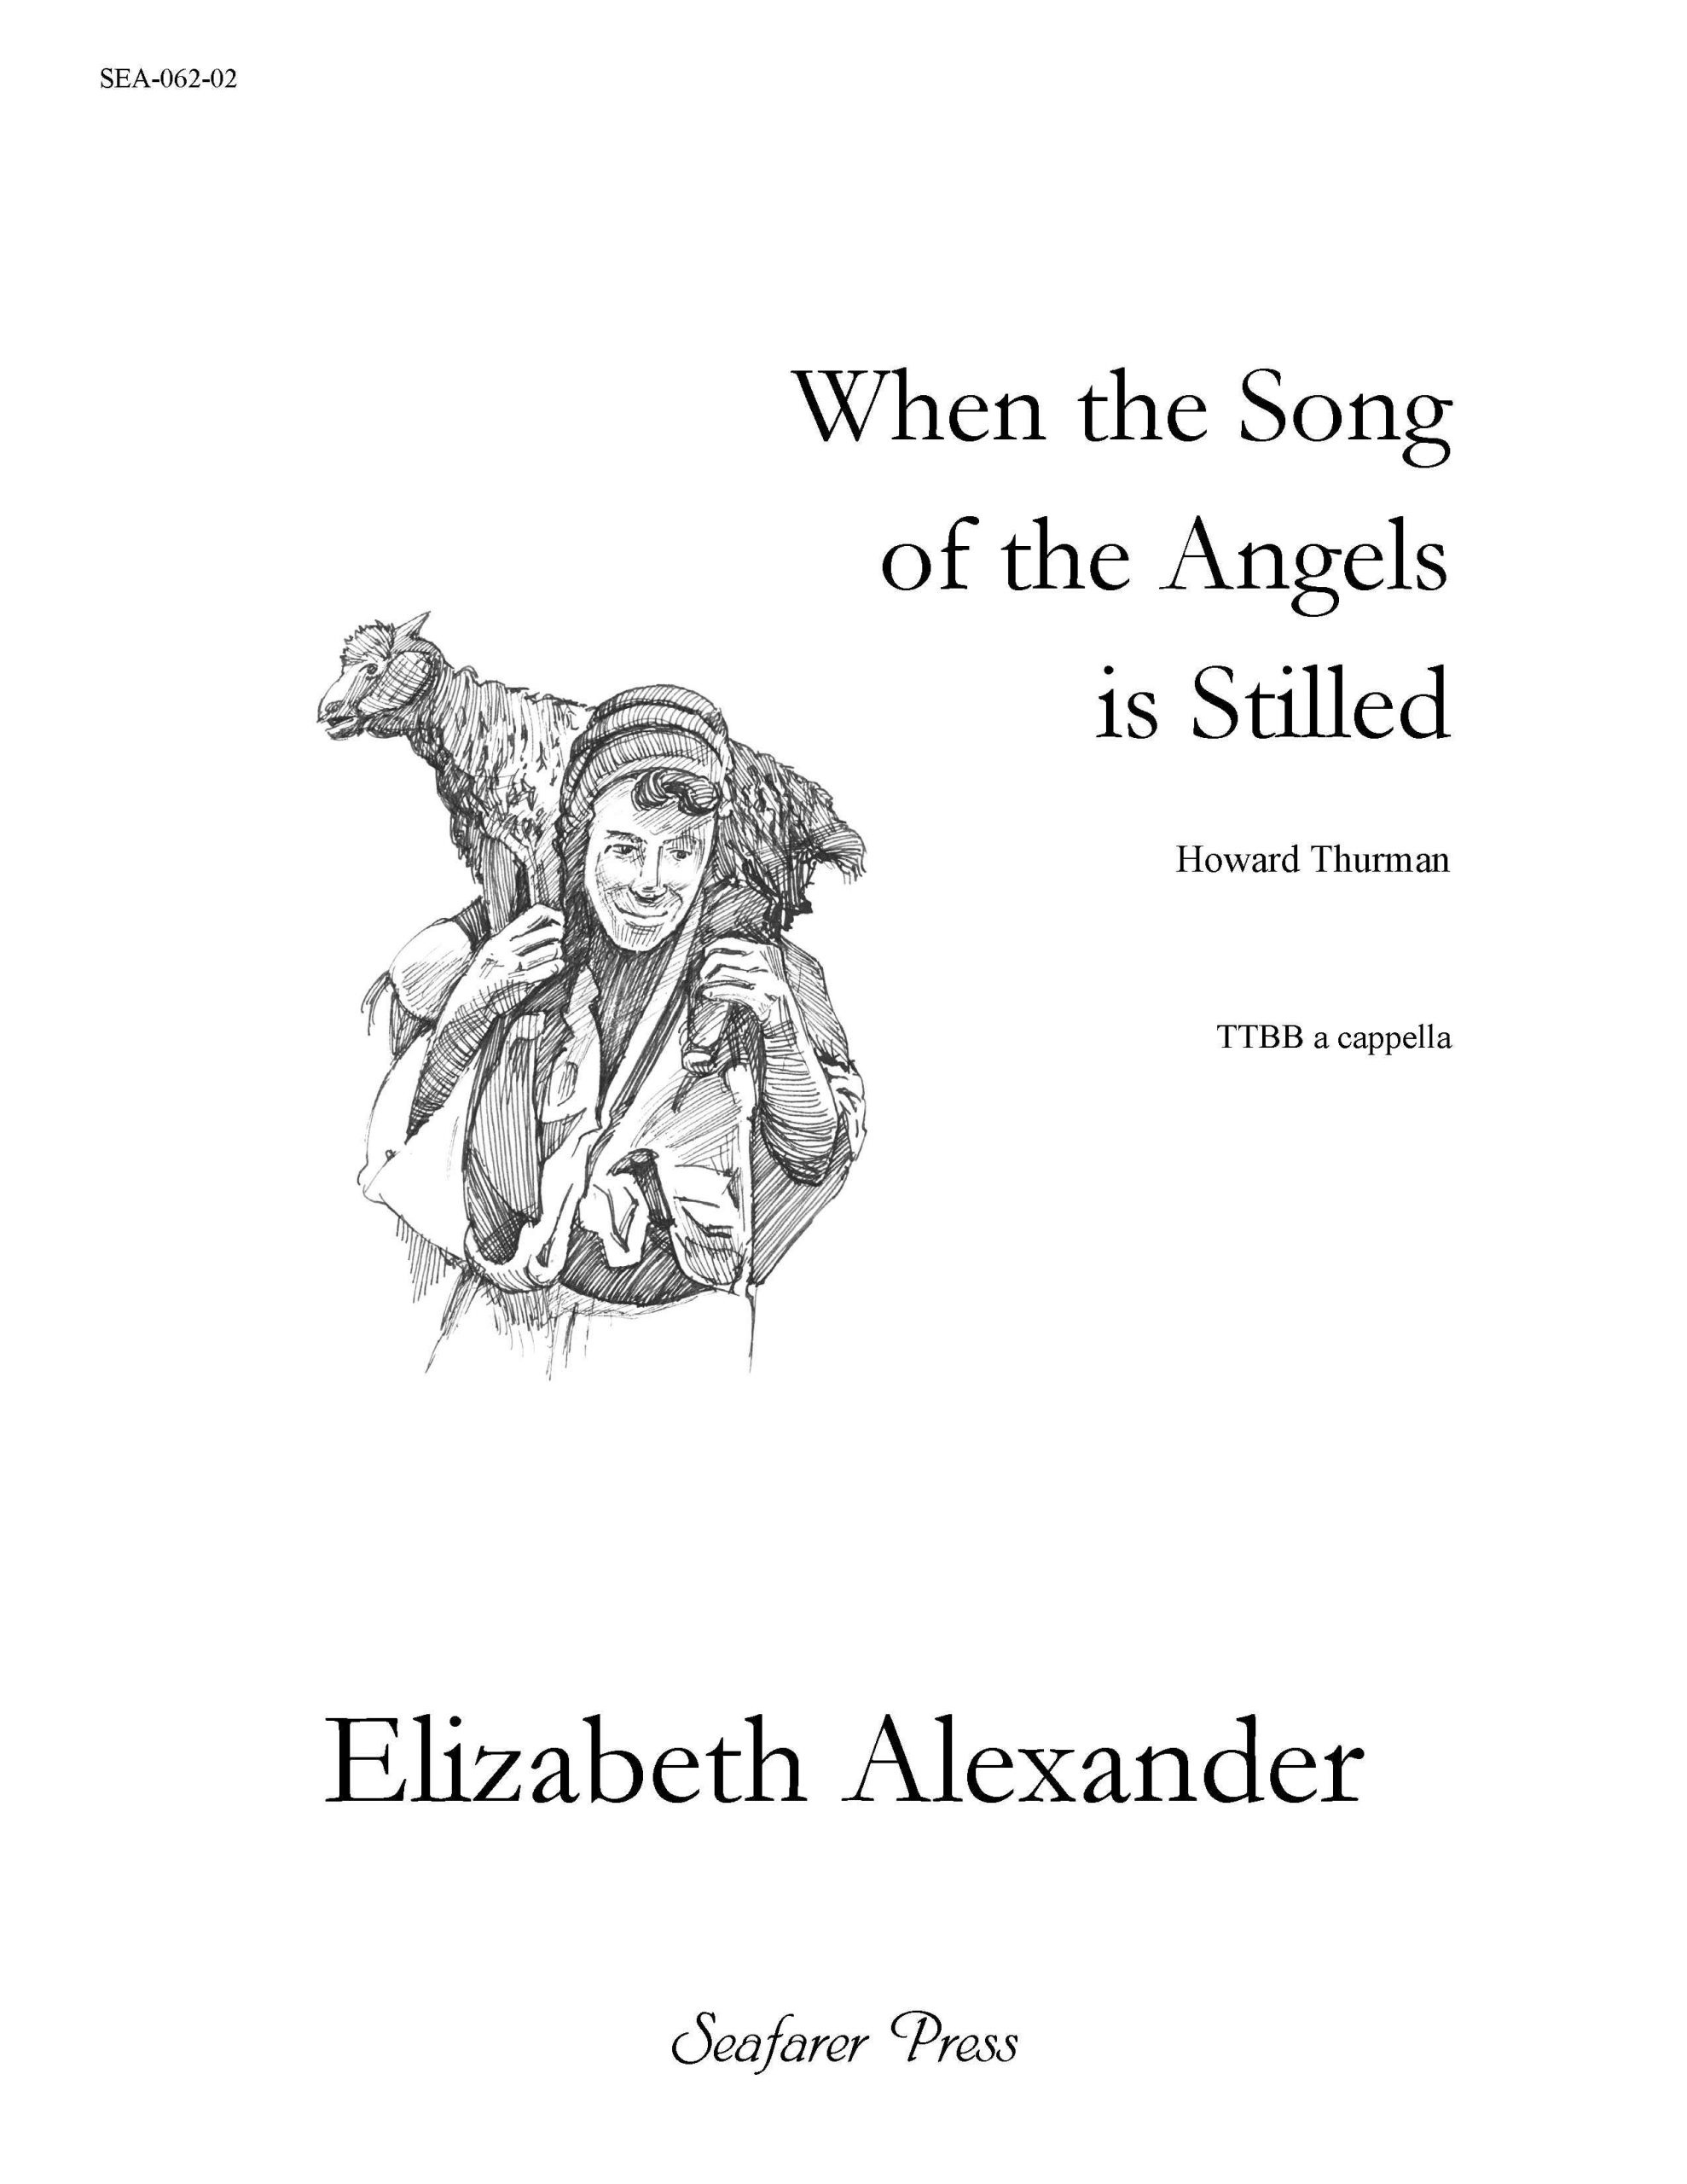 SEA-062-02 - When the Song of the Angels Is Stilled